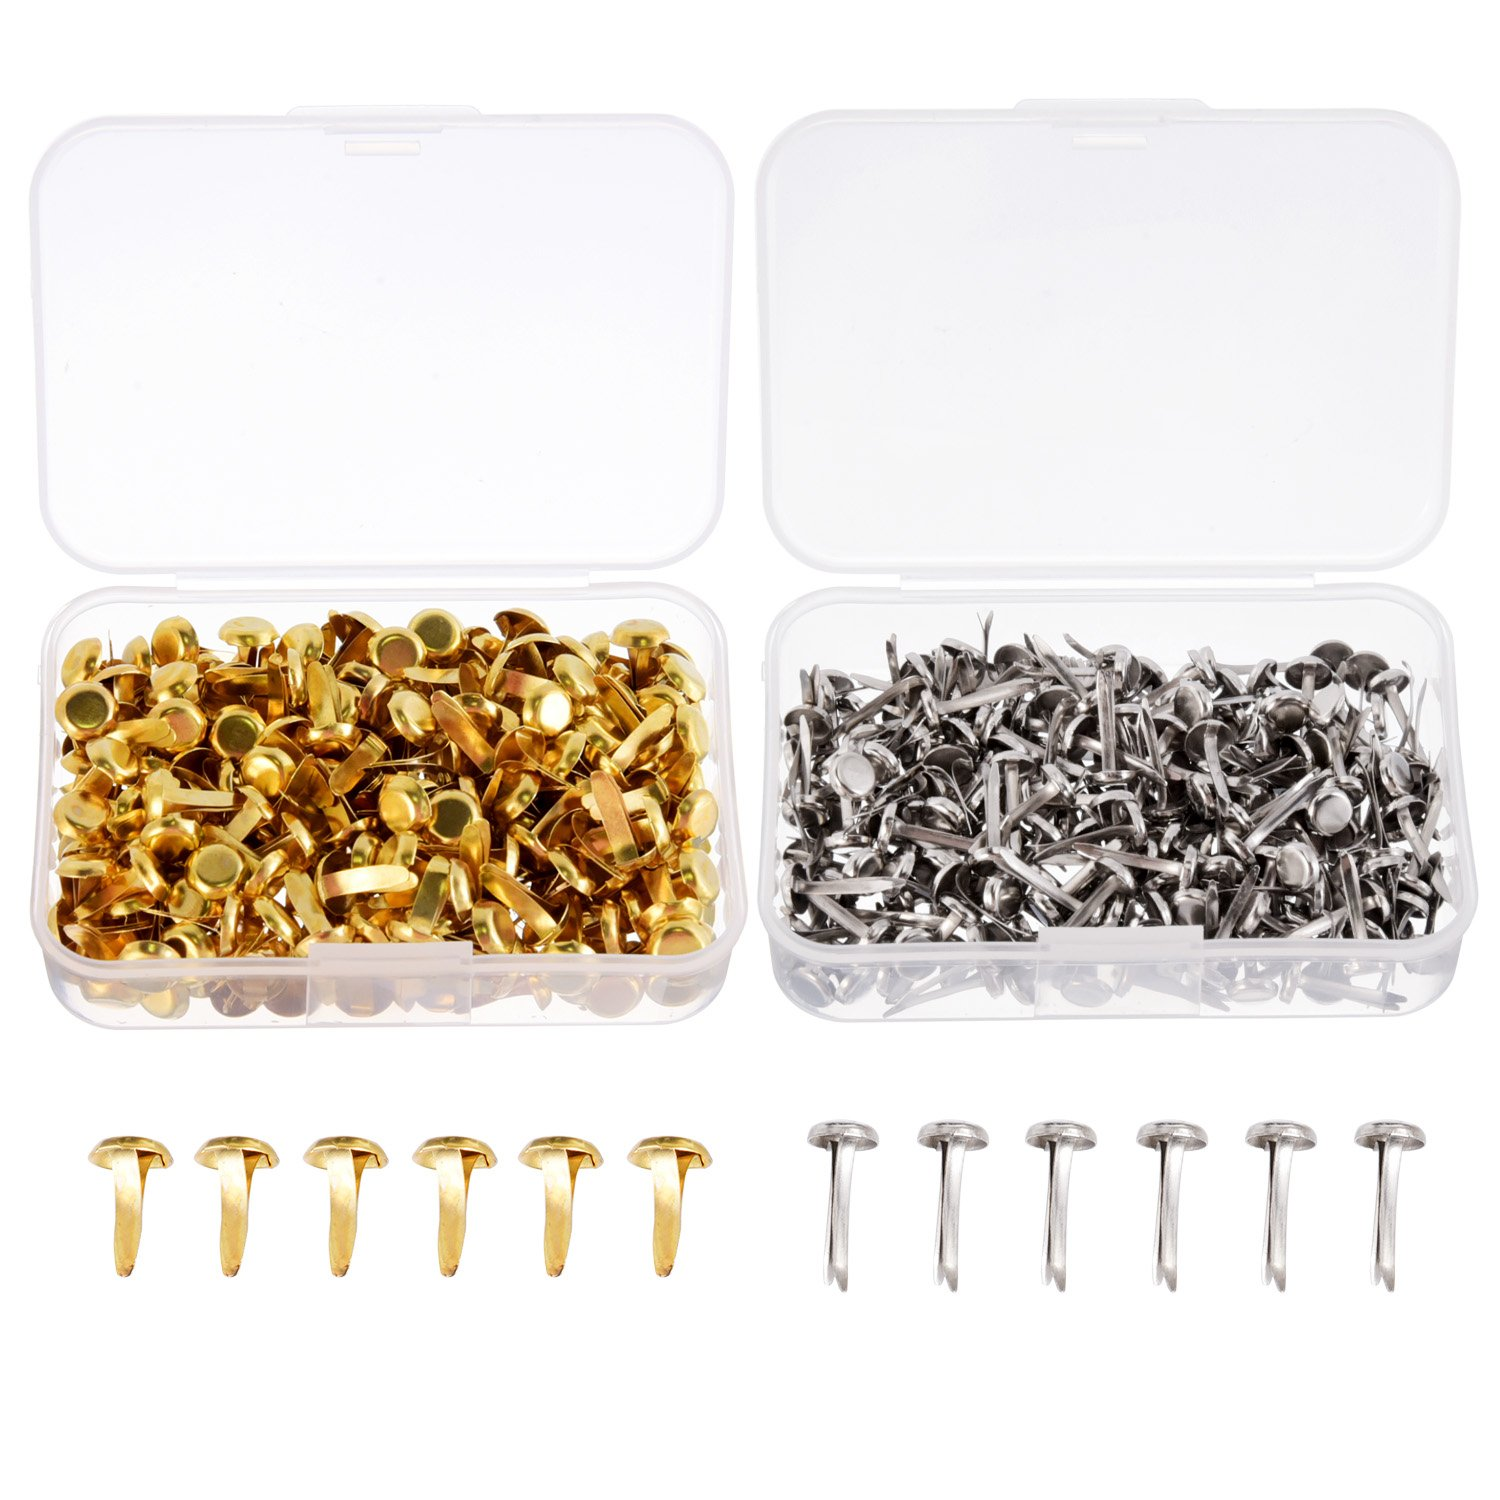 Shappy 500 Pieces Paper Fasteners Brass Plated Scrapbooking Brads Round Metal Brads with Storage Box for Crafts Making DIY, Gold and Silver 4336848270